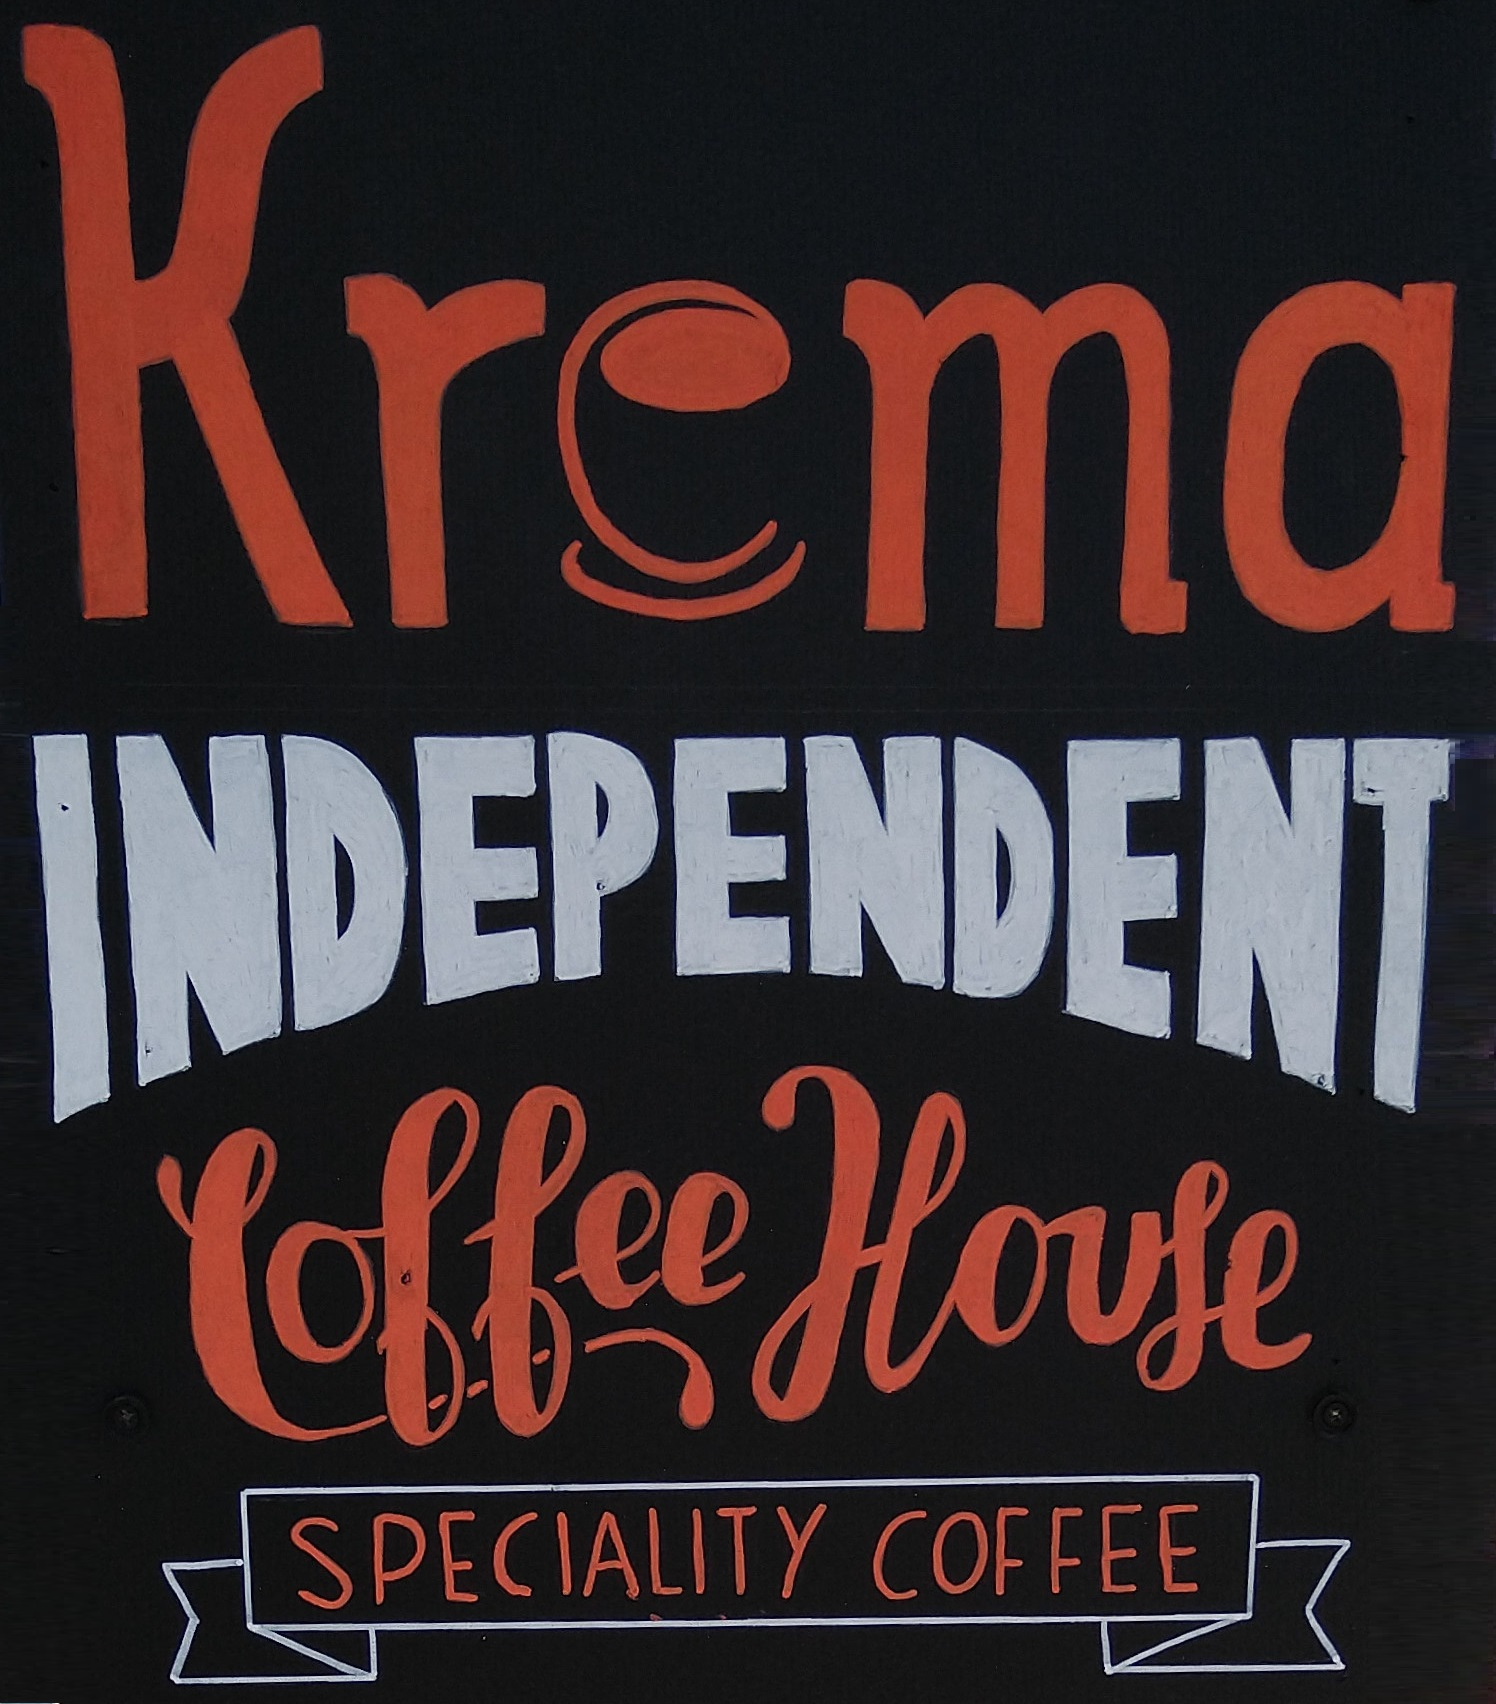 Details from the A-board outside Krema Coffee Guildford, now reopened for takeaway only.